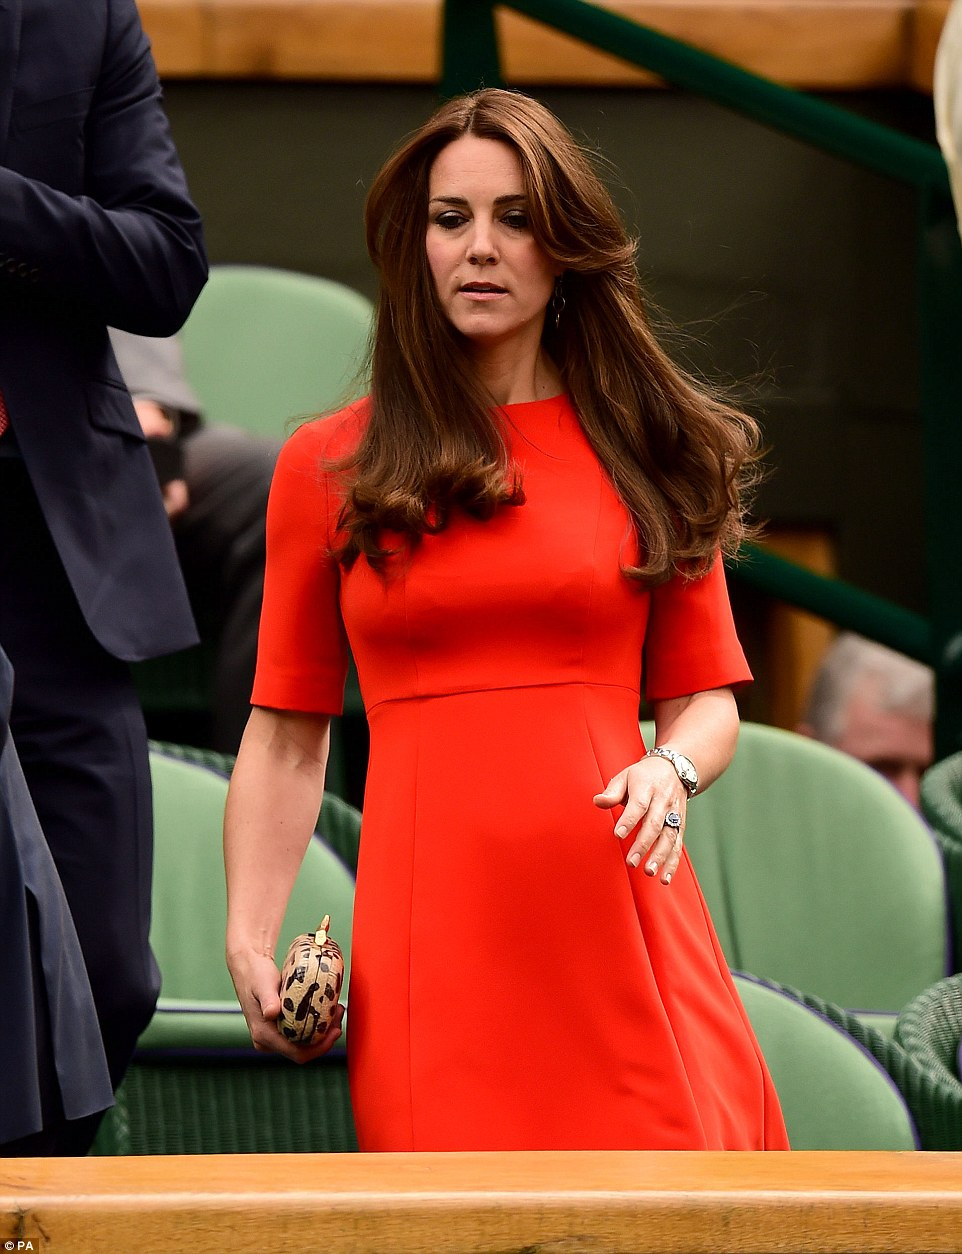 Queen of the high street: The Duchess of Cambridge looked resplendent in a bold red L.K.Bennett dress